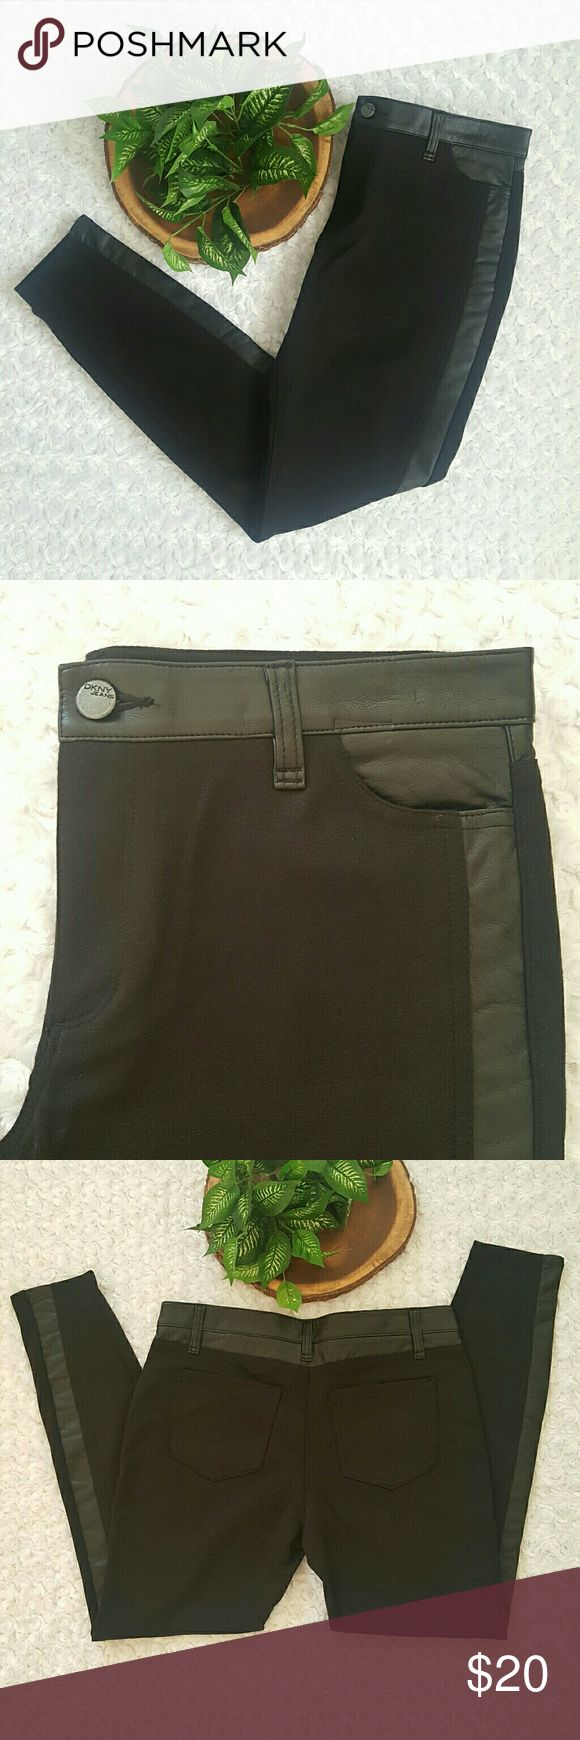 💰DEAL OF DAY💰NEW Faux Leather Paneled DKNY Pants PRICE FIRM ON DEAL OF DAY  Dress up your outfit with these trendy faux leather leggings. Perfect with comfy sweater on a chilly fall day.   Black faux leather paneled ponte leggings. Zip fly and button closure,  Faux leather belt loops. Stretchy fabric.   Size 8. NWOT. Smoke and pet free home.   No Trades! Bundle and Save! Inquire below with questions!   Thanks for looking, sharing, and saving! DKNY Pants Leggings